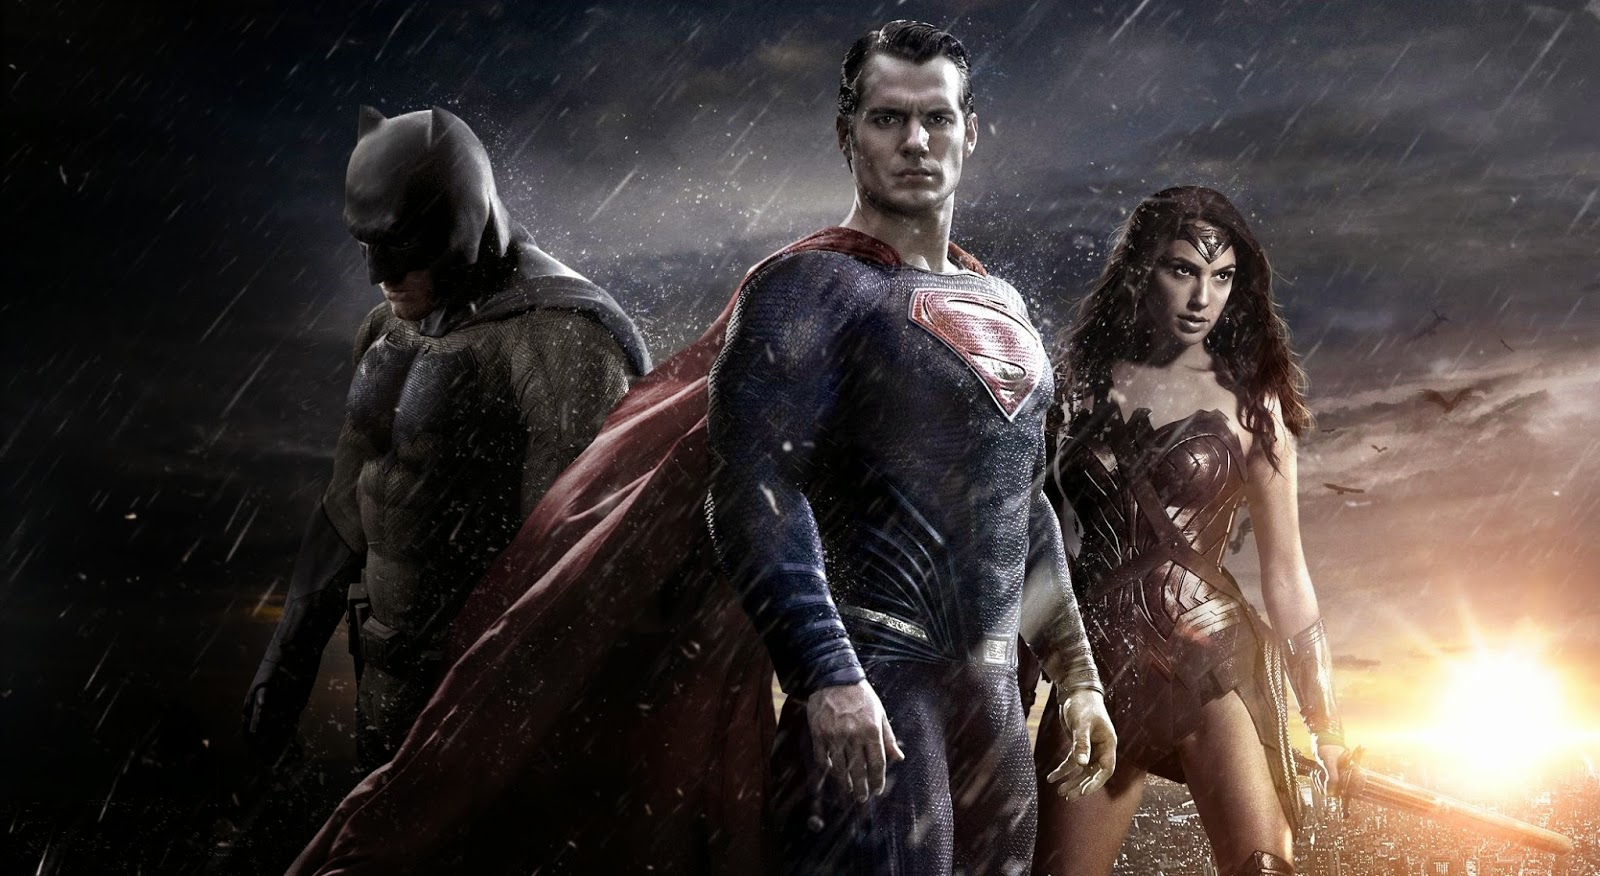 All Of Batman vs Superman Trailer Edited Into One Chronological Footage